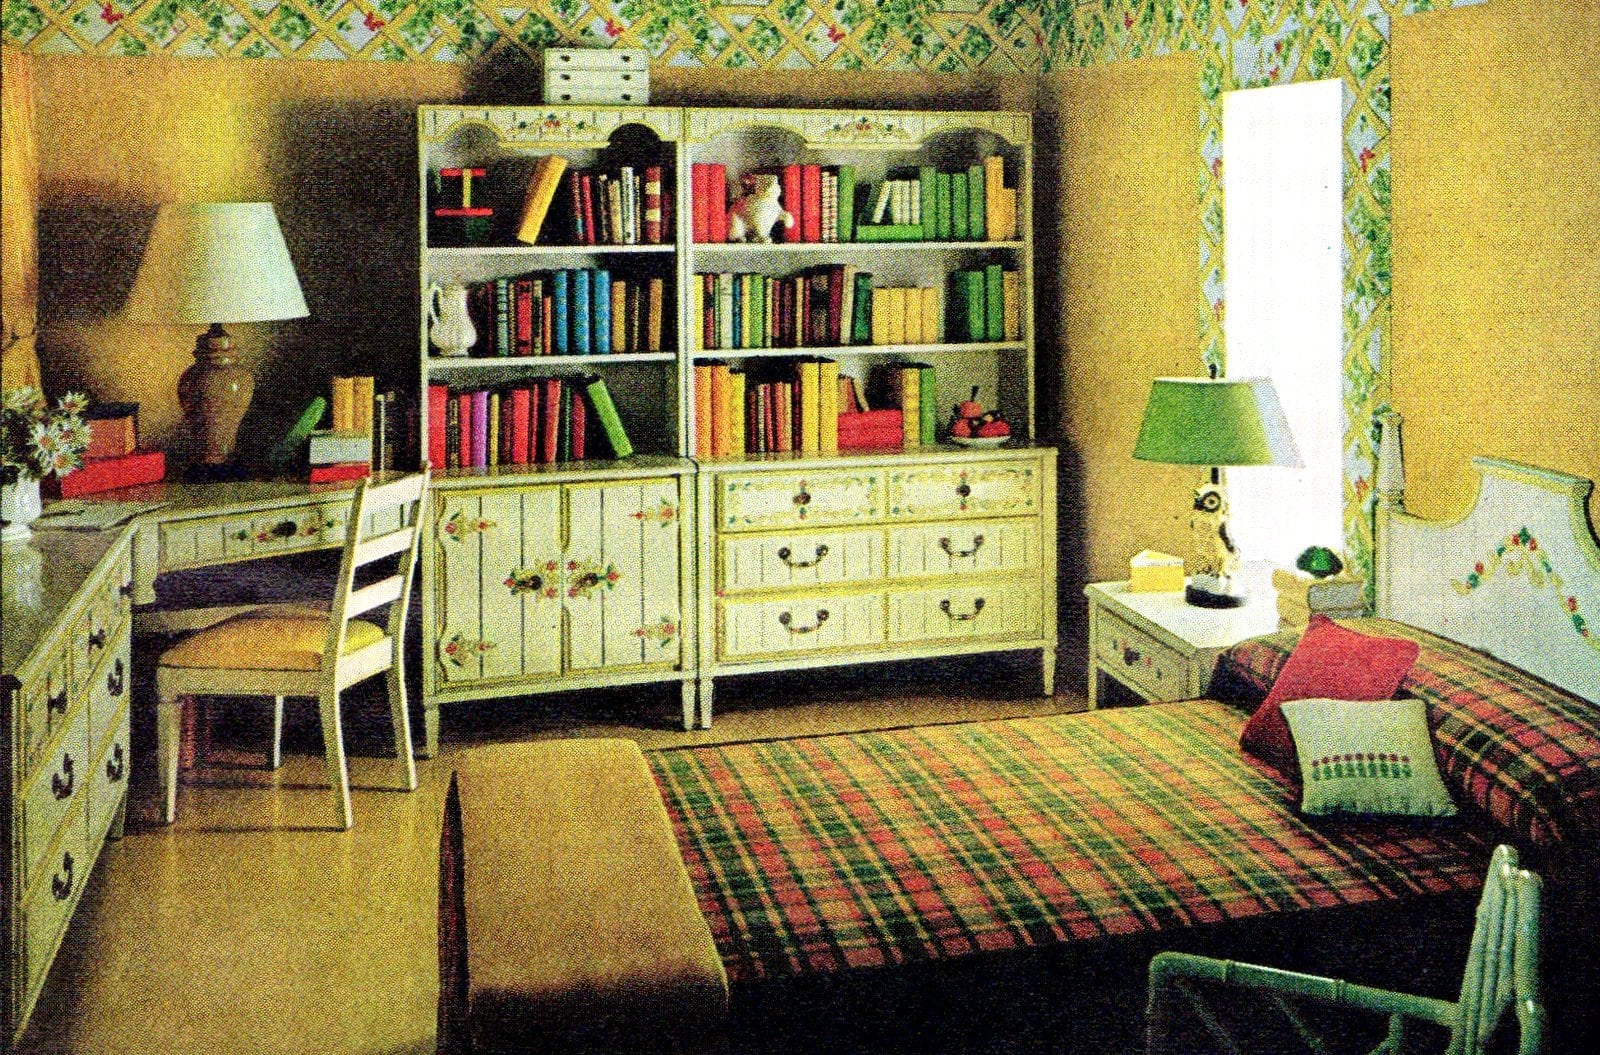 Vintage 1970s bedroom ideas for teens - Furniture and home decor (1)